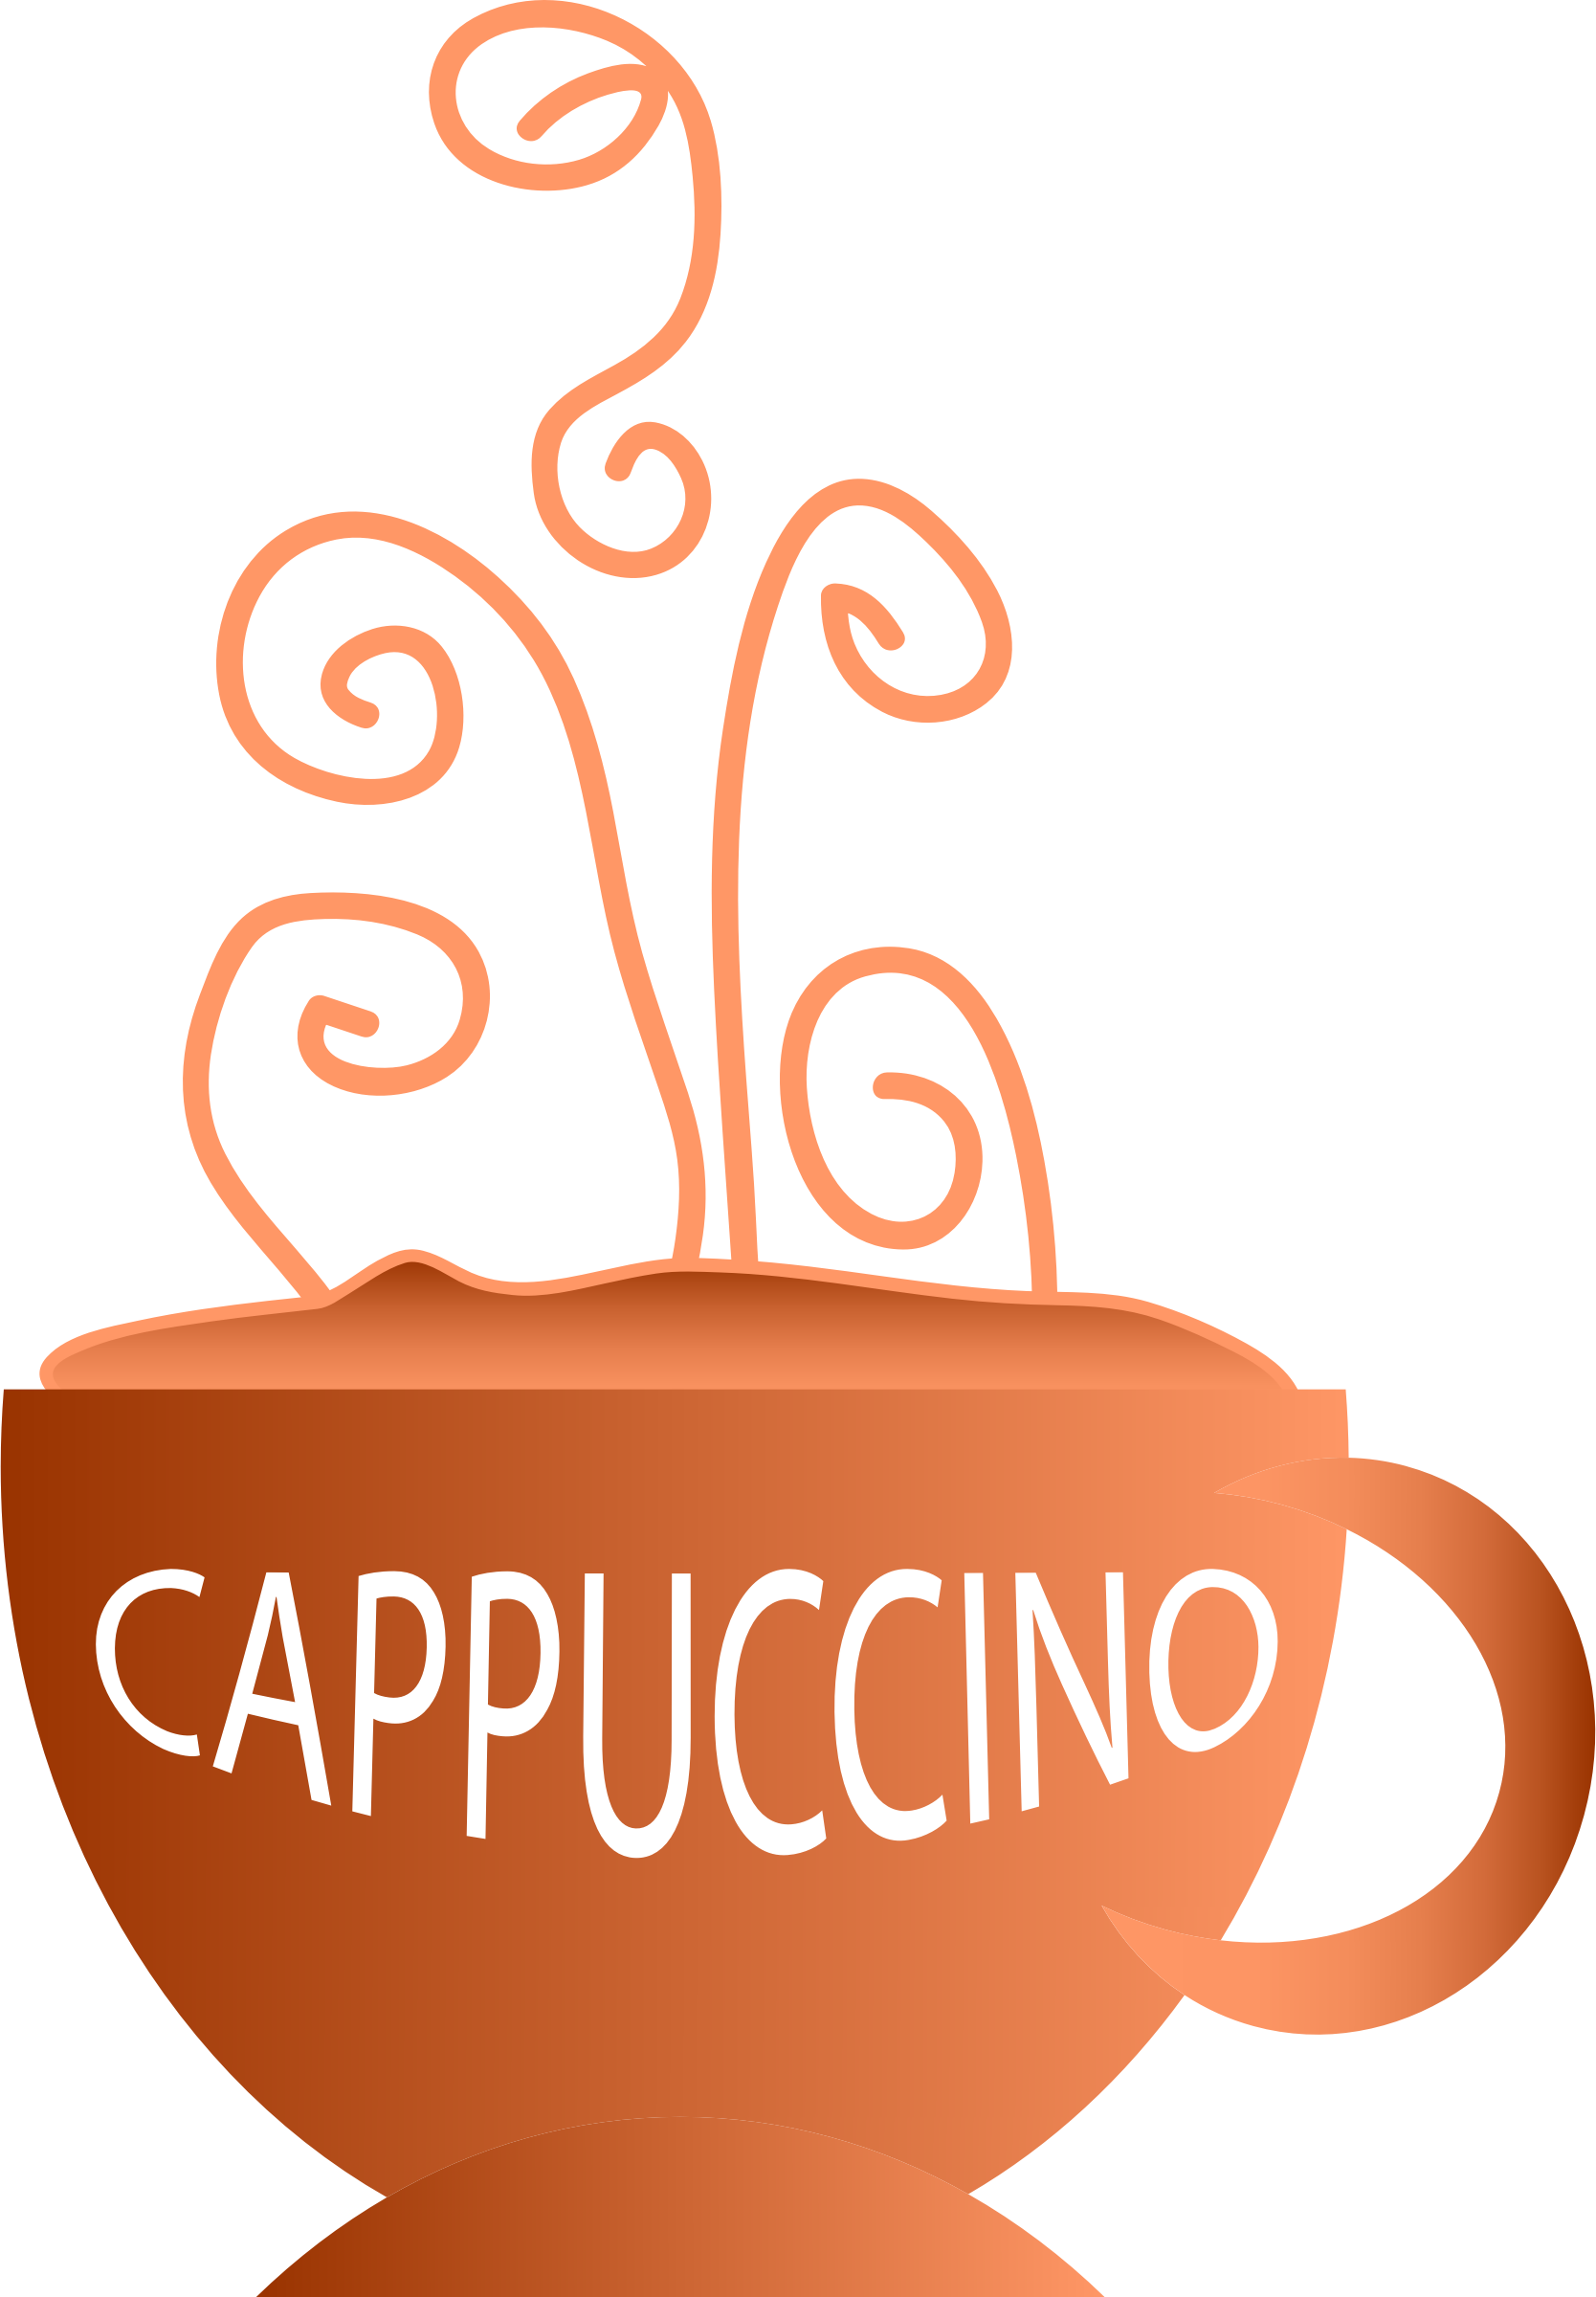 cappuccino by aungkarns